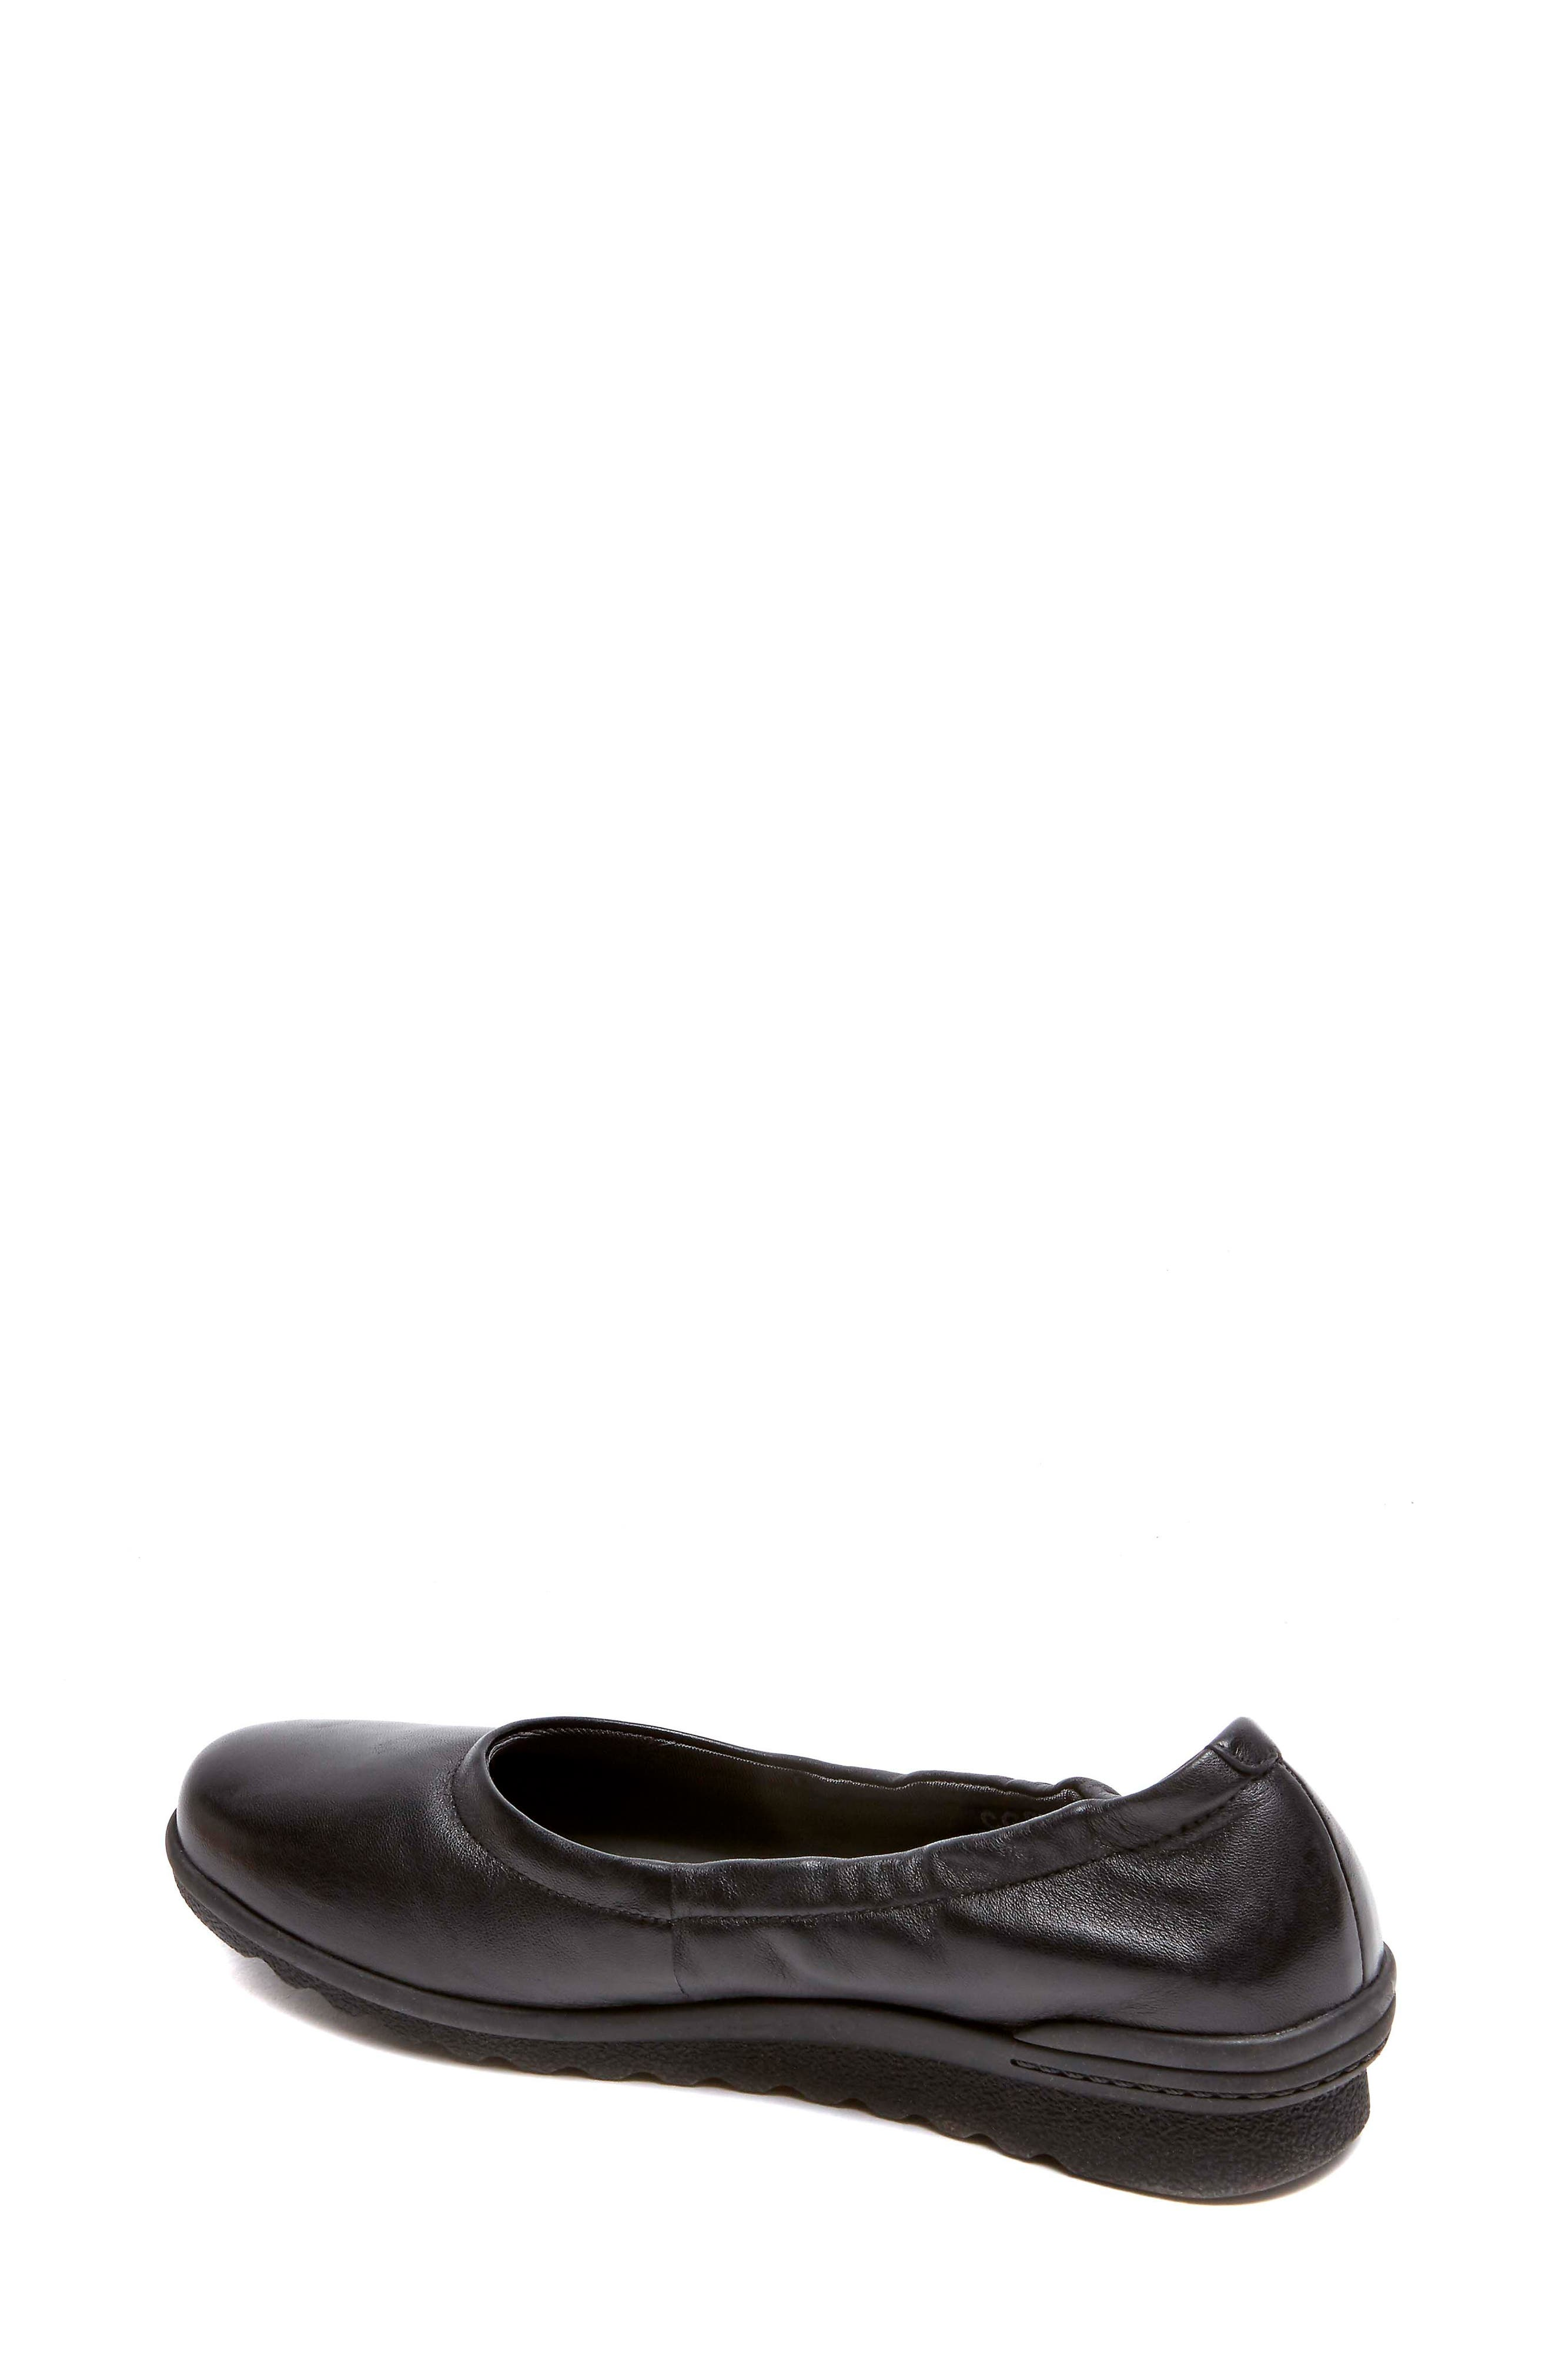 Chenole Ballet Flat,                             Alternate thumbnail 2, color,                             BLACK LEATHER